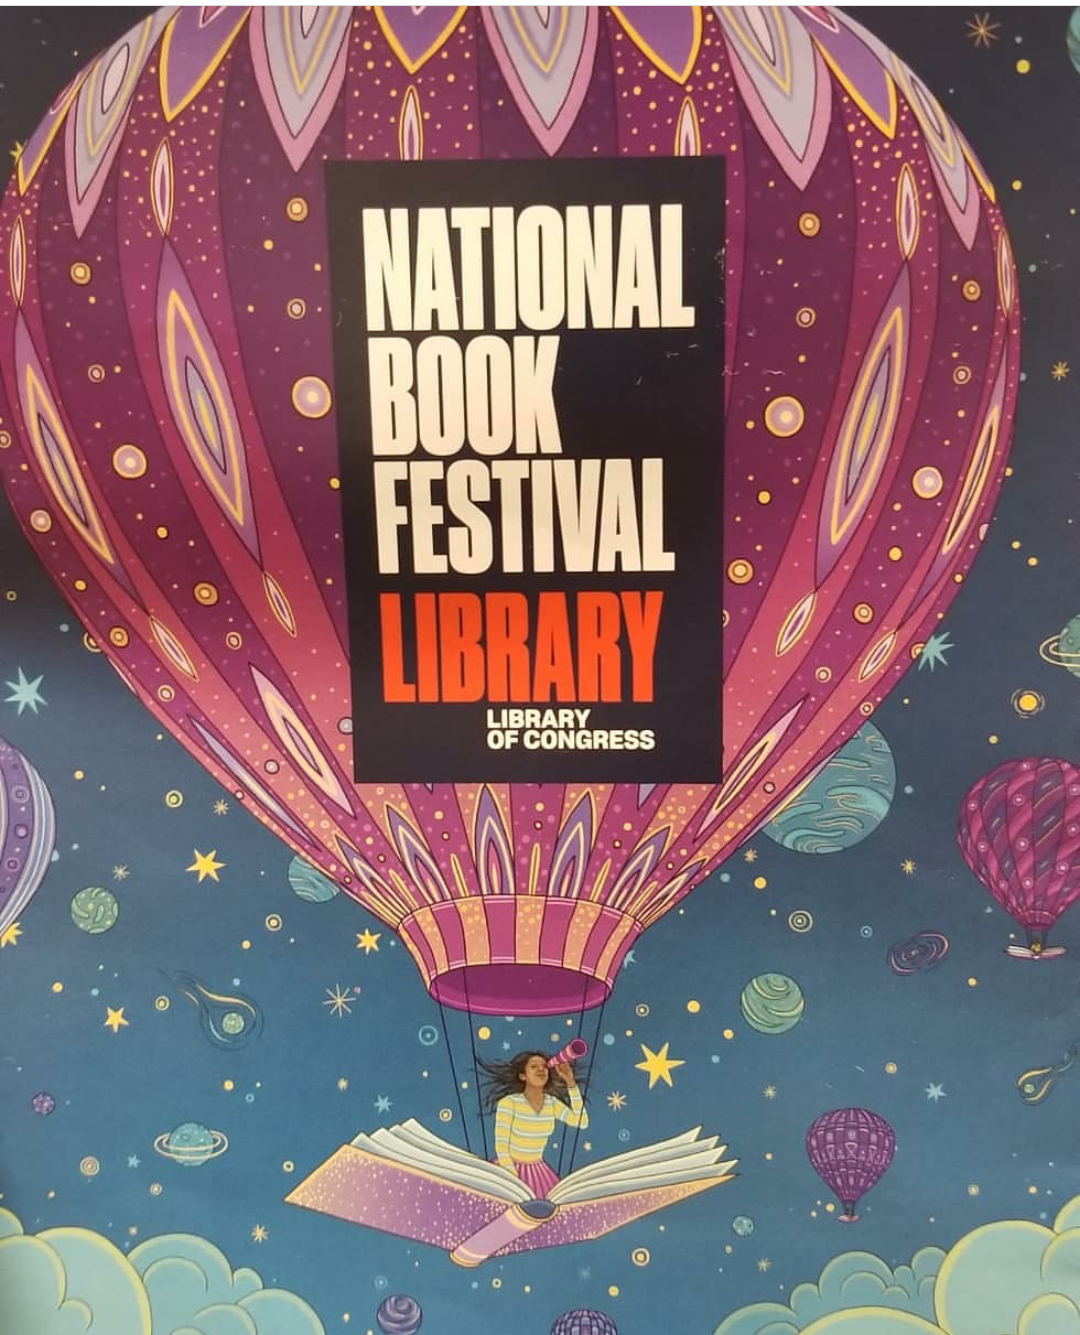 This year's National Book Festival poster